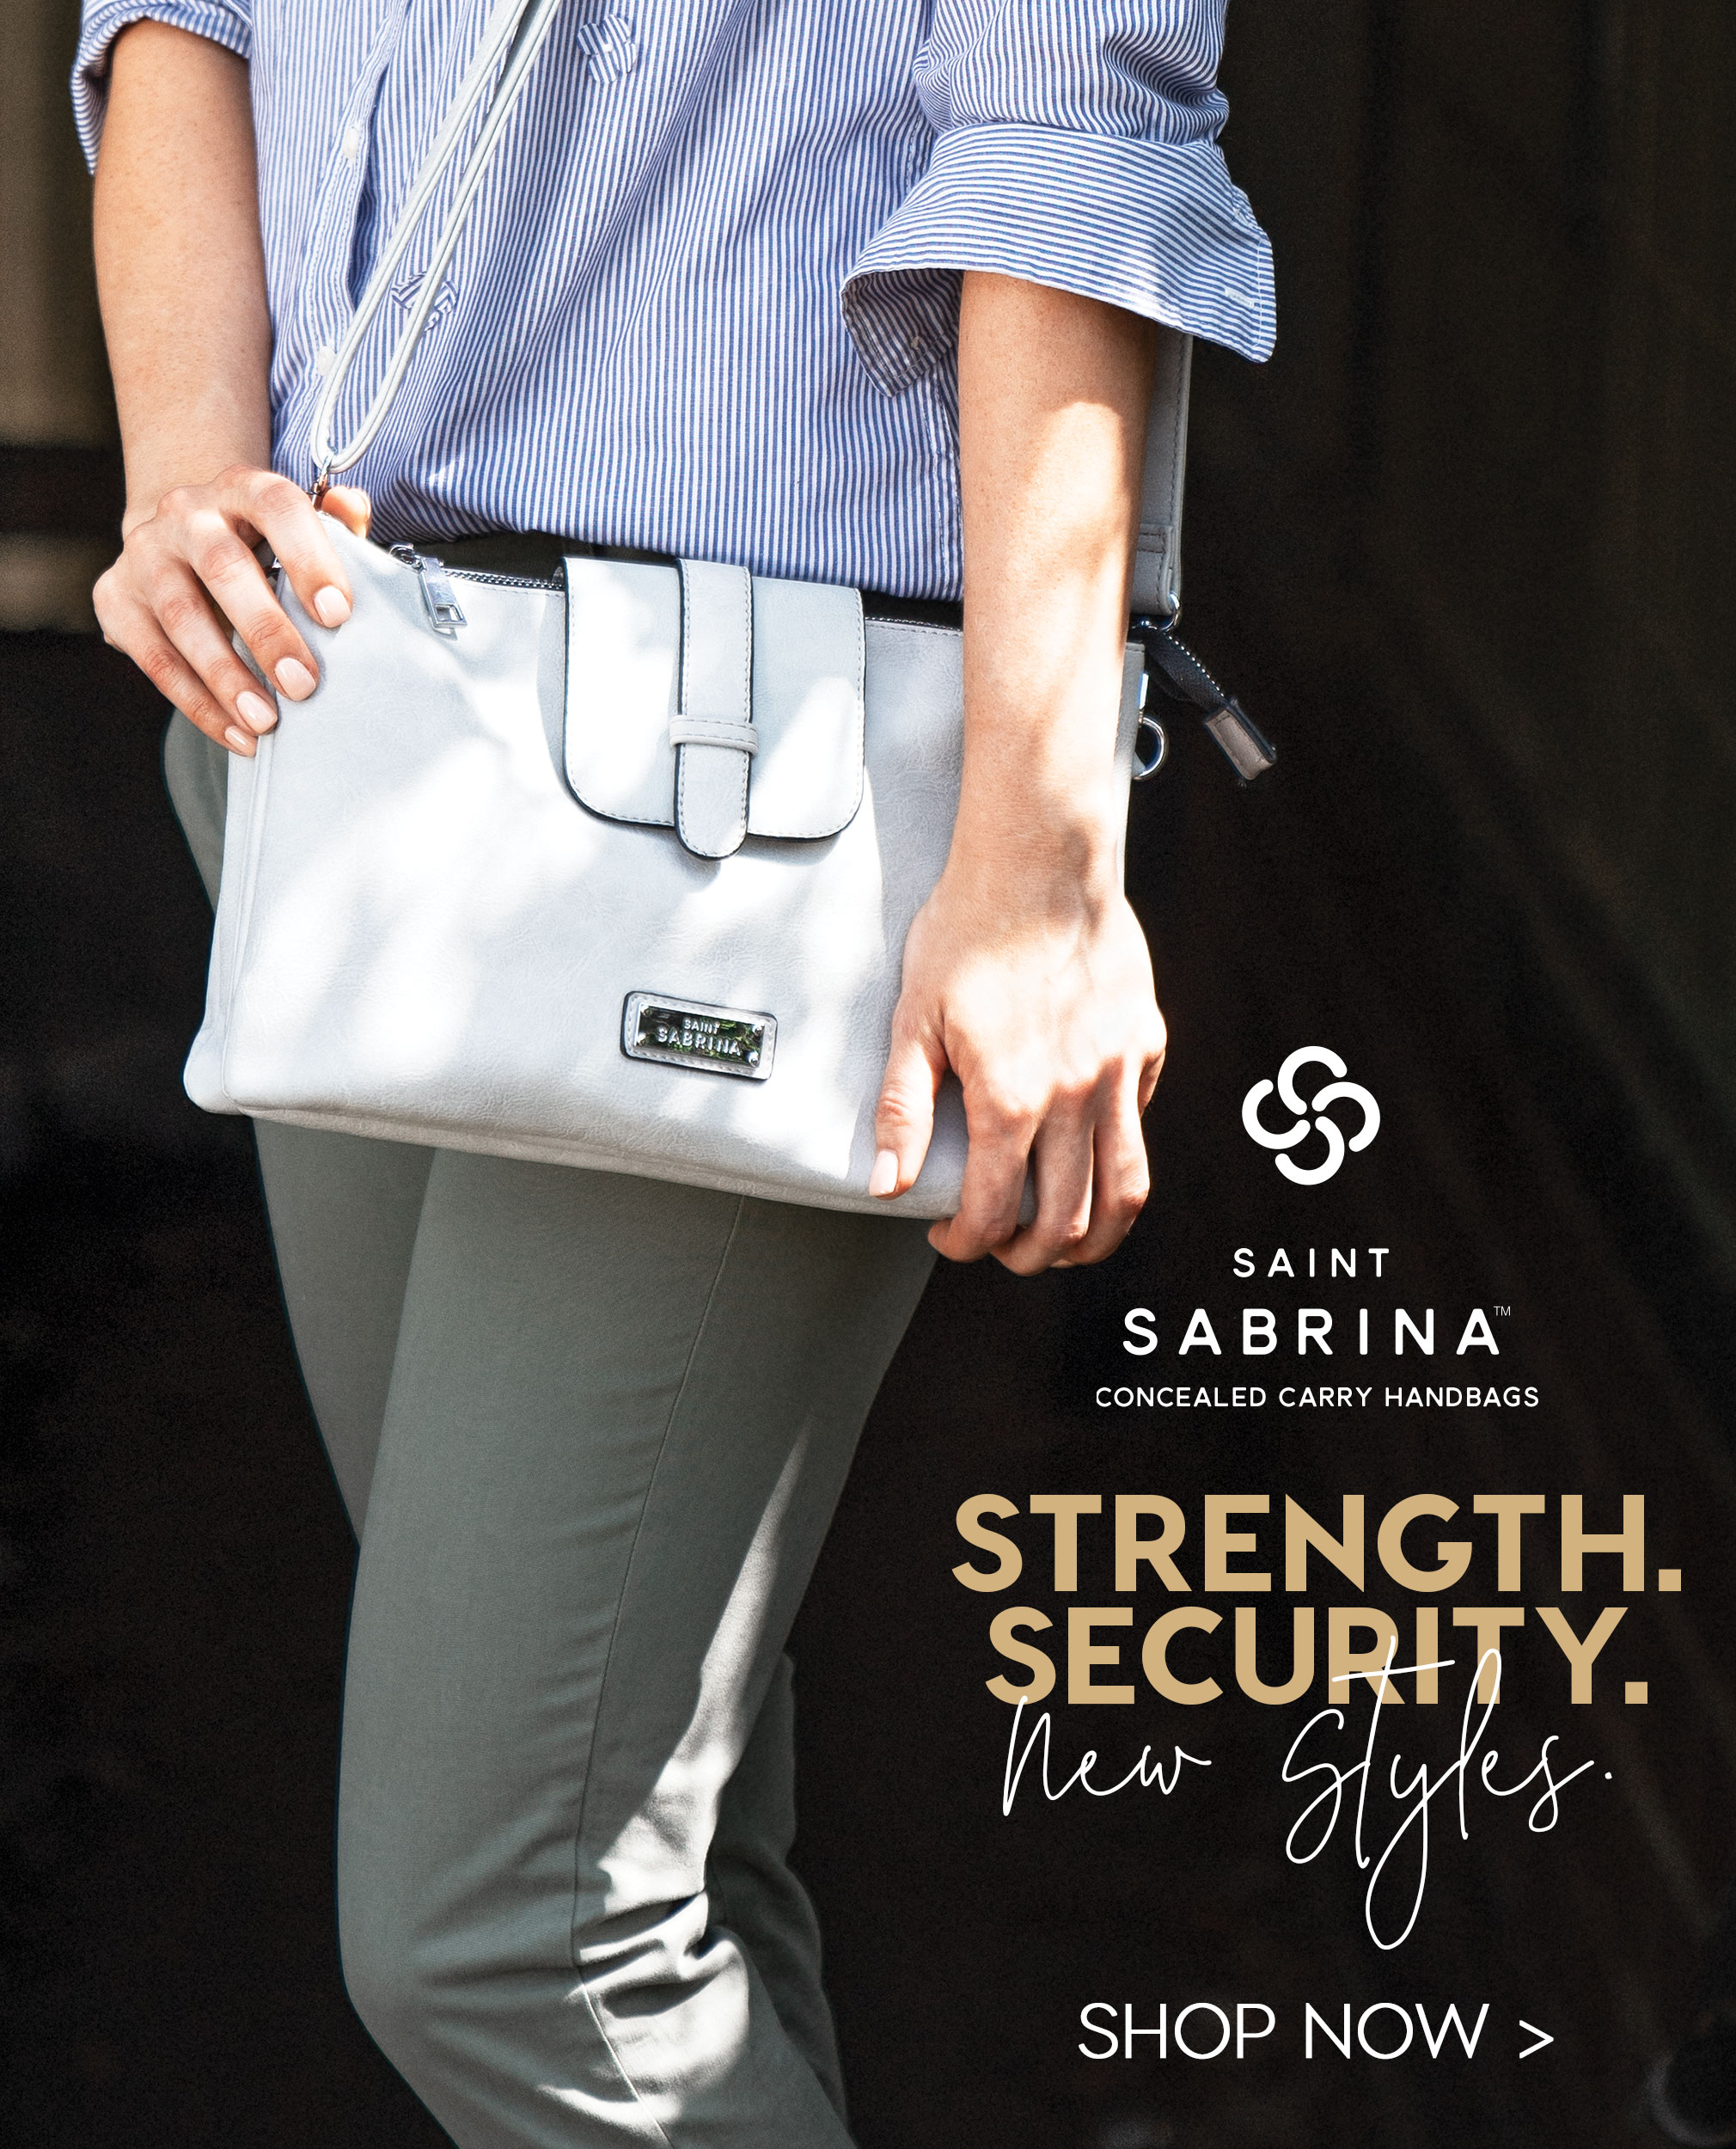 Saint Sabrina New Products